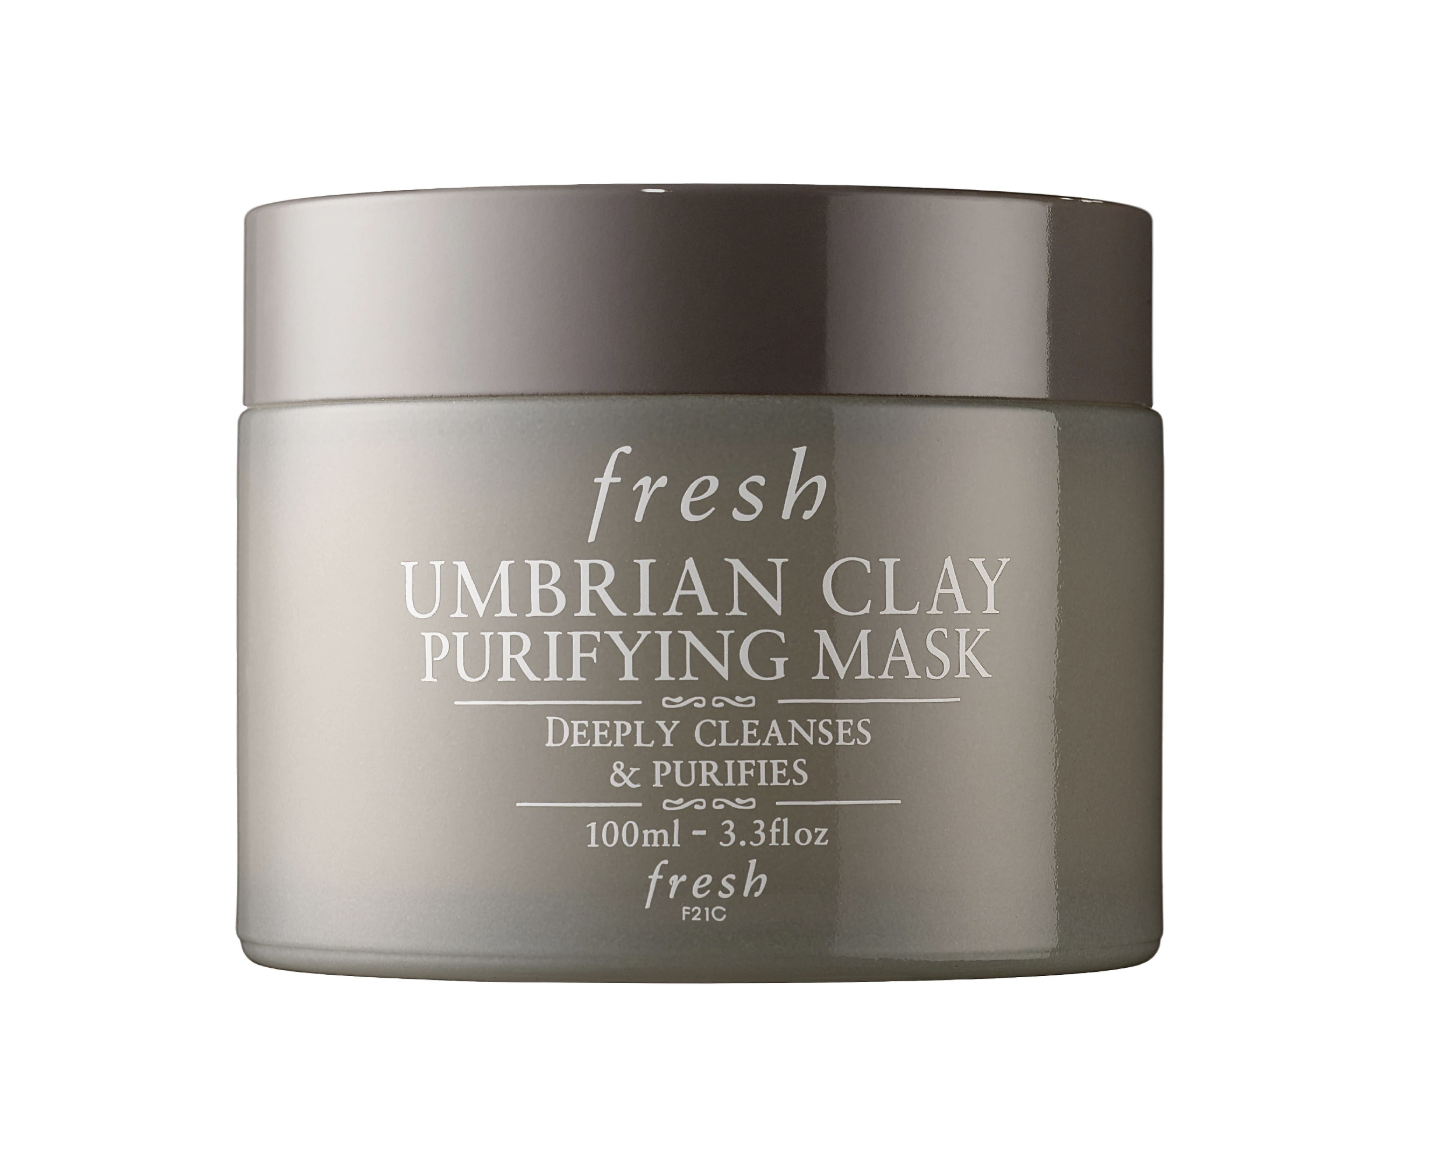 Fresh UmbriaN Clay Mask - fresh Umbrian Clay Purifying Mask, $58; SephoraWe previously used Fresh's Umbrian Clay Mattifying Mask that came in a white tube, but it looks like that sku has been discontinued and replaced with this purifying mask. The product lasts forever, so you'll get a ton of bang for your buck. Use it as a spot treatment at night or a full-on mask!